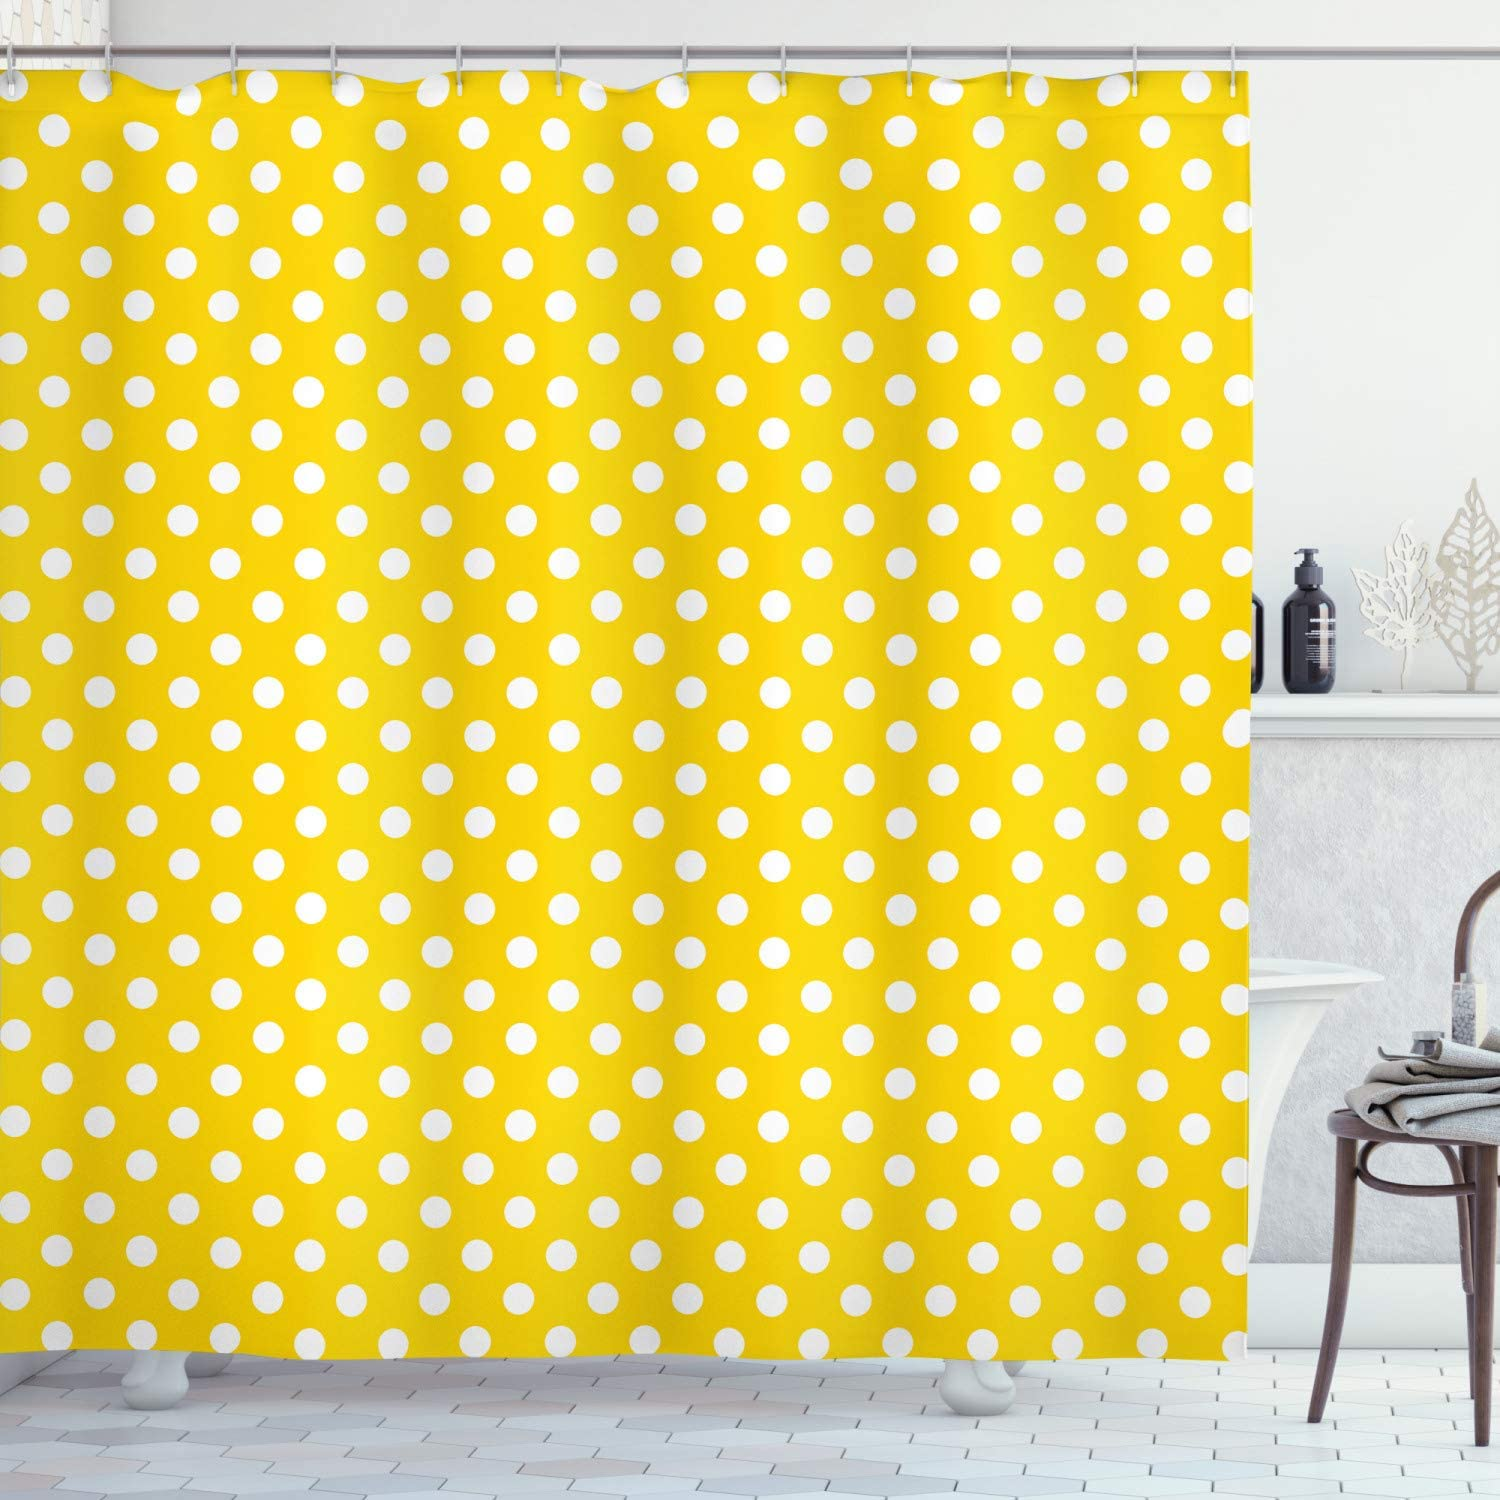 Amazon Com Ambesonne Yellow Shower Curtain Picnic Inspired 50s 60s 70s Themed Polka Dot Retro Spotted Pattern Print Cloth Fabric Bathroom Decor Set With Hooks 70 Long Yellow White Home Kitchen